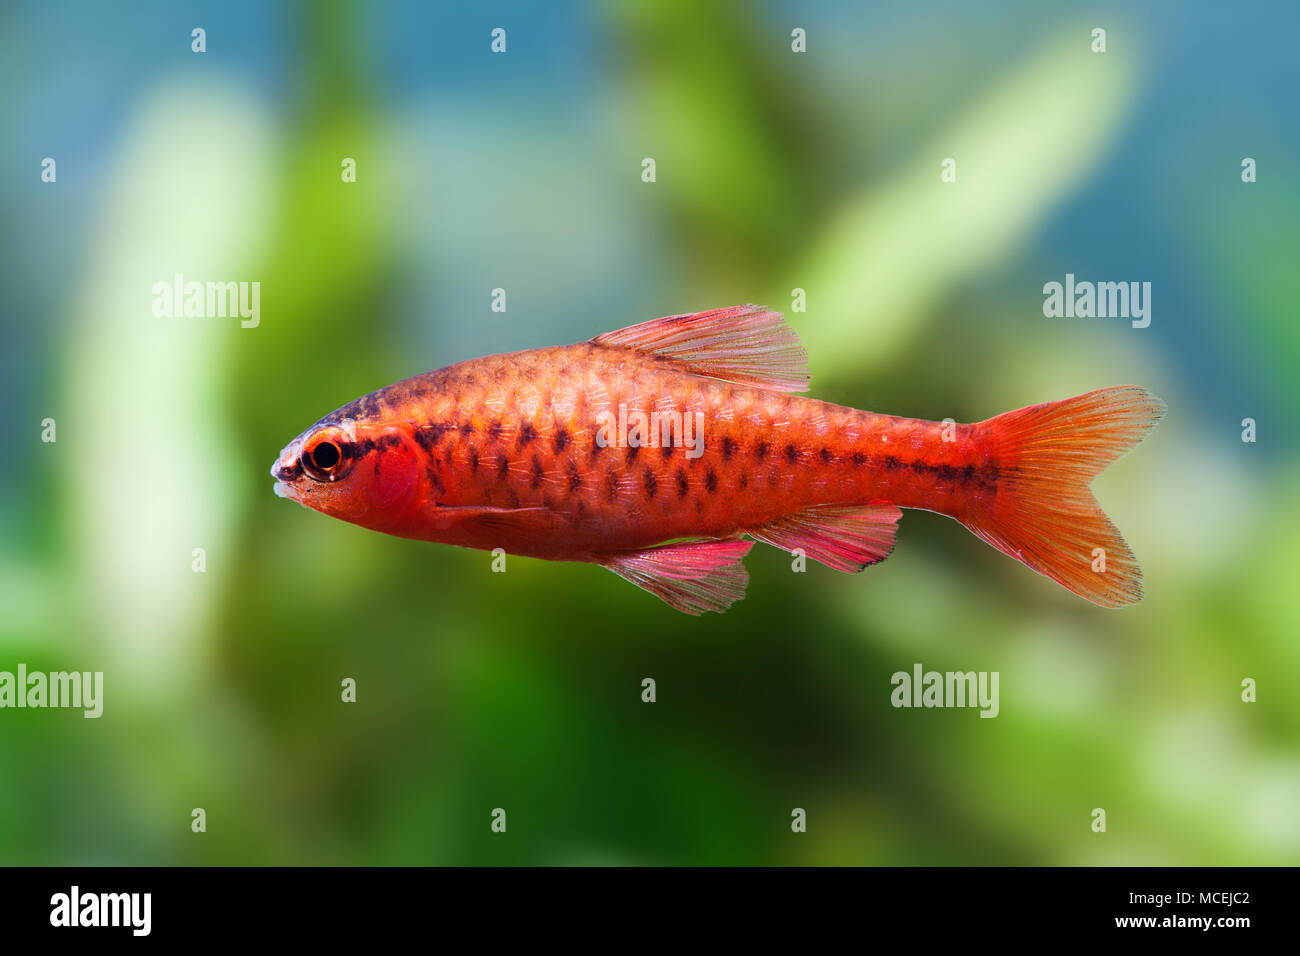 Red Beautiful Fish Stock Photos & Red Beautiful Fish Stock Images ...